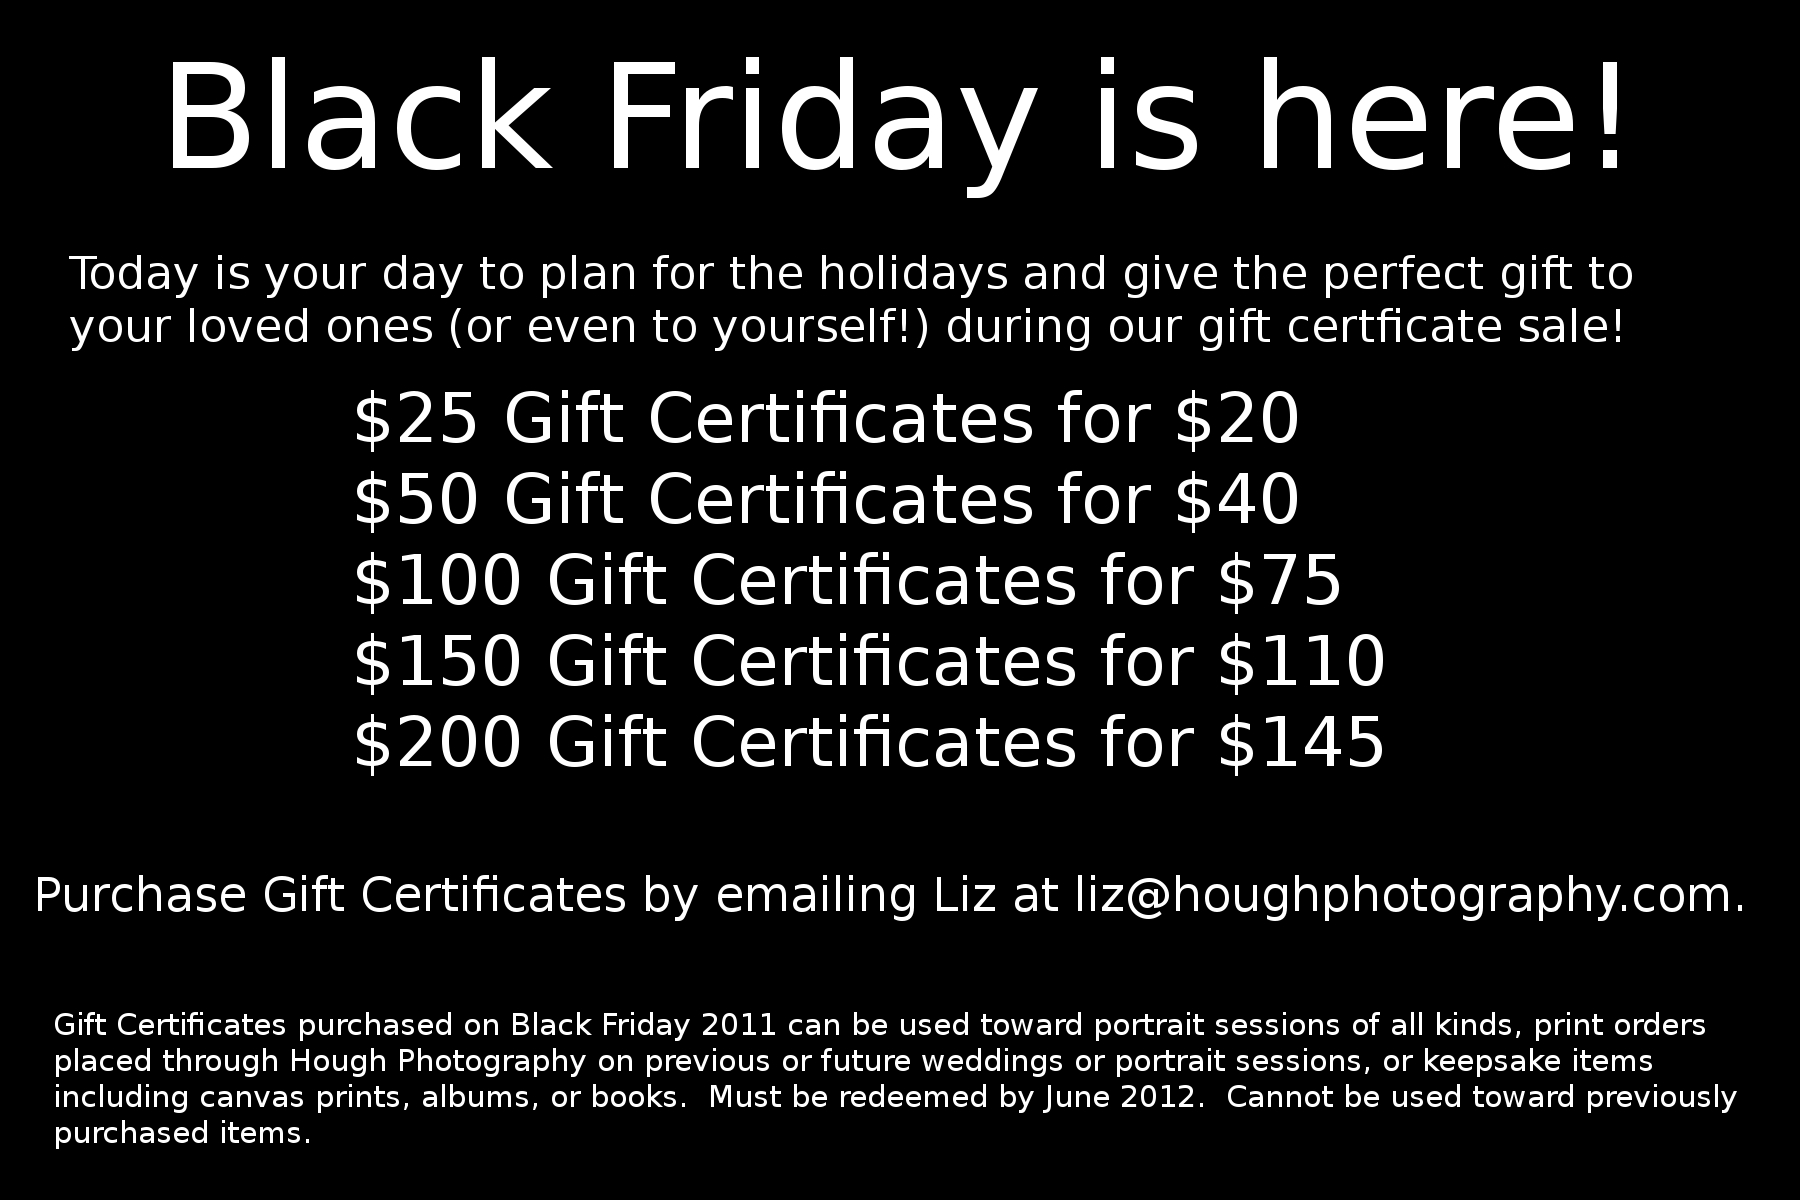 11.25.11 Black Friday Ad